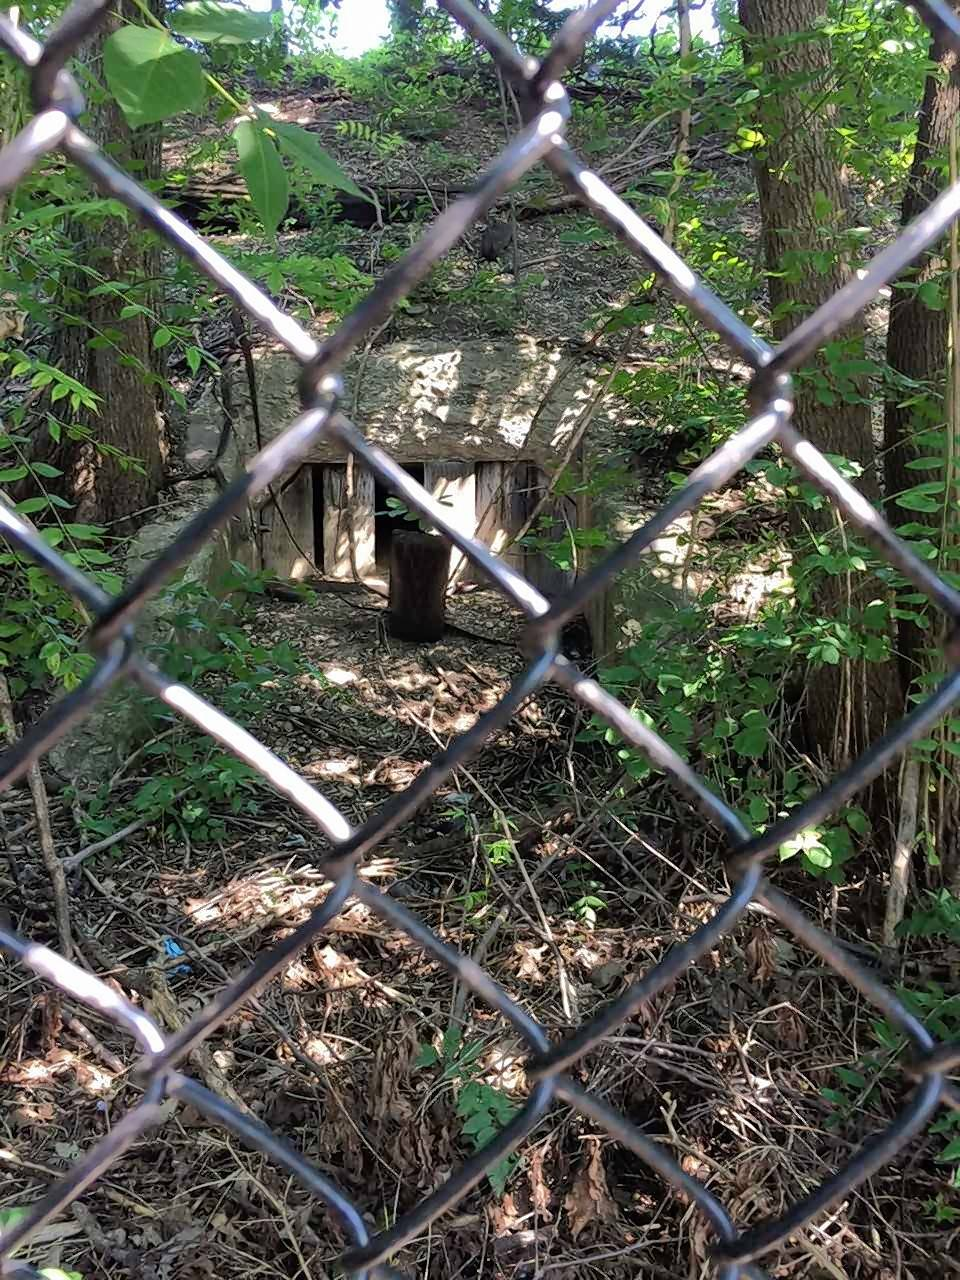 The southern entrance to the cow tunnel a group of Naperville residents is considering reopening is located near a gazebo in the Naperville Station subdivision of row houses just west of the DuPage Children's Museum.